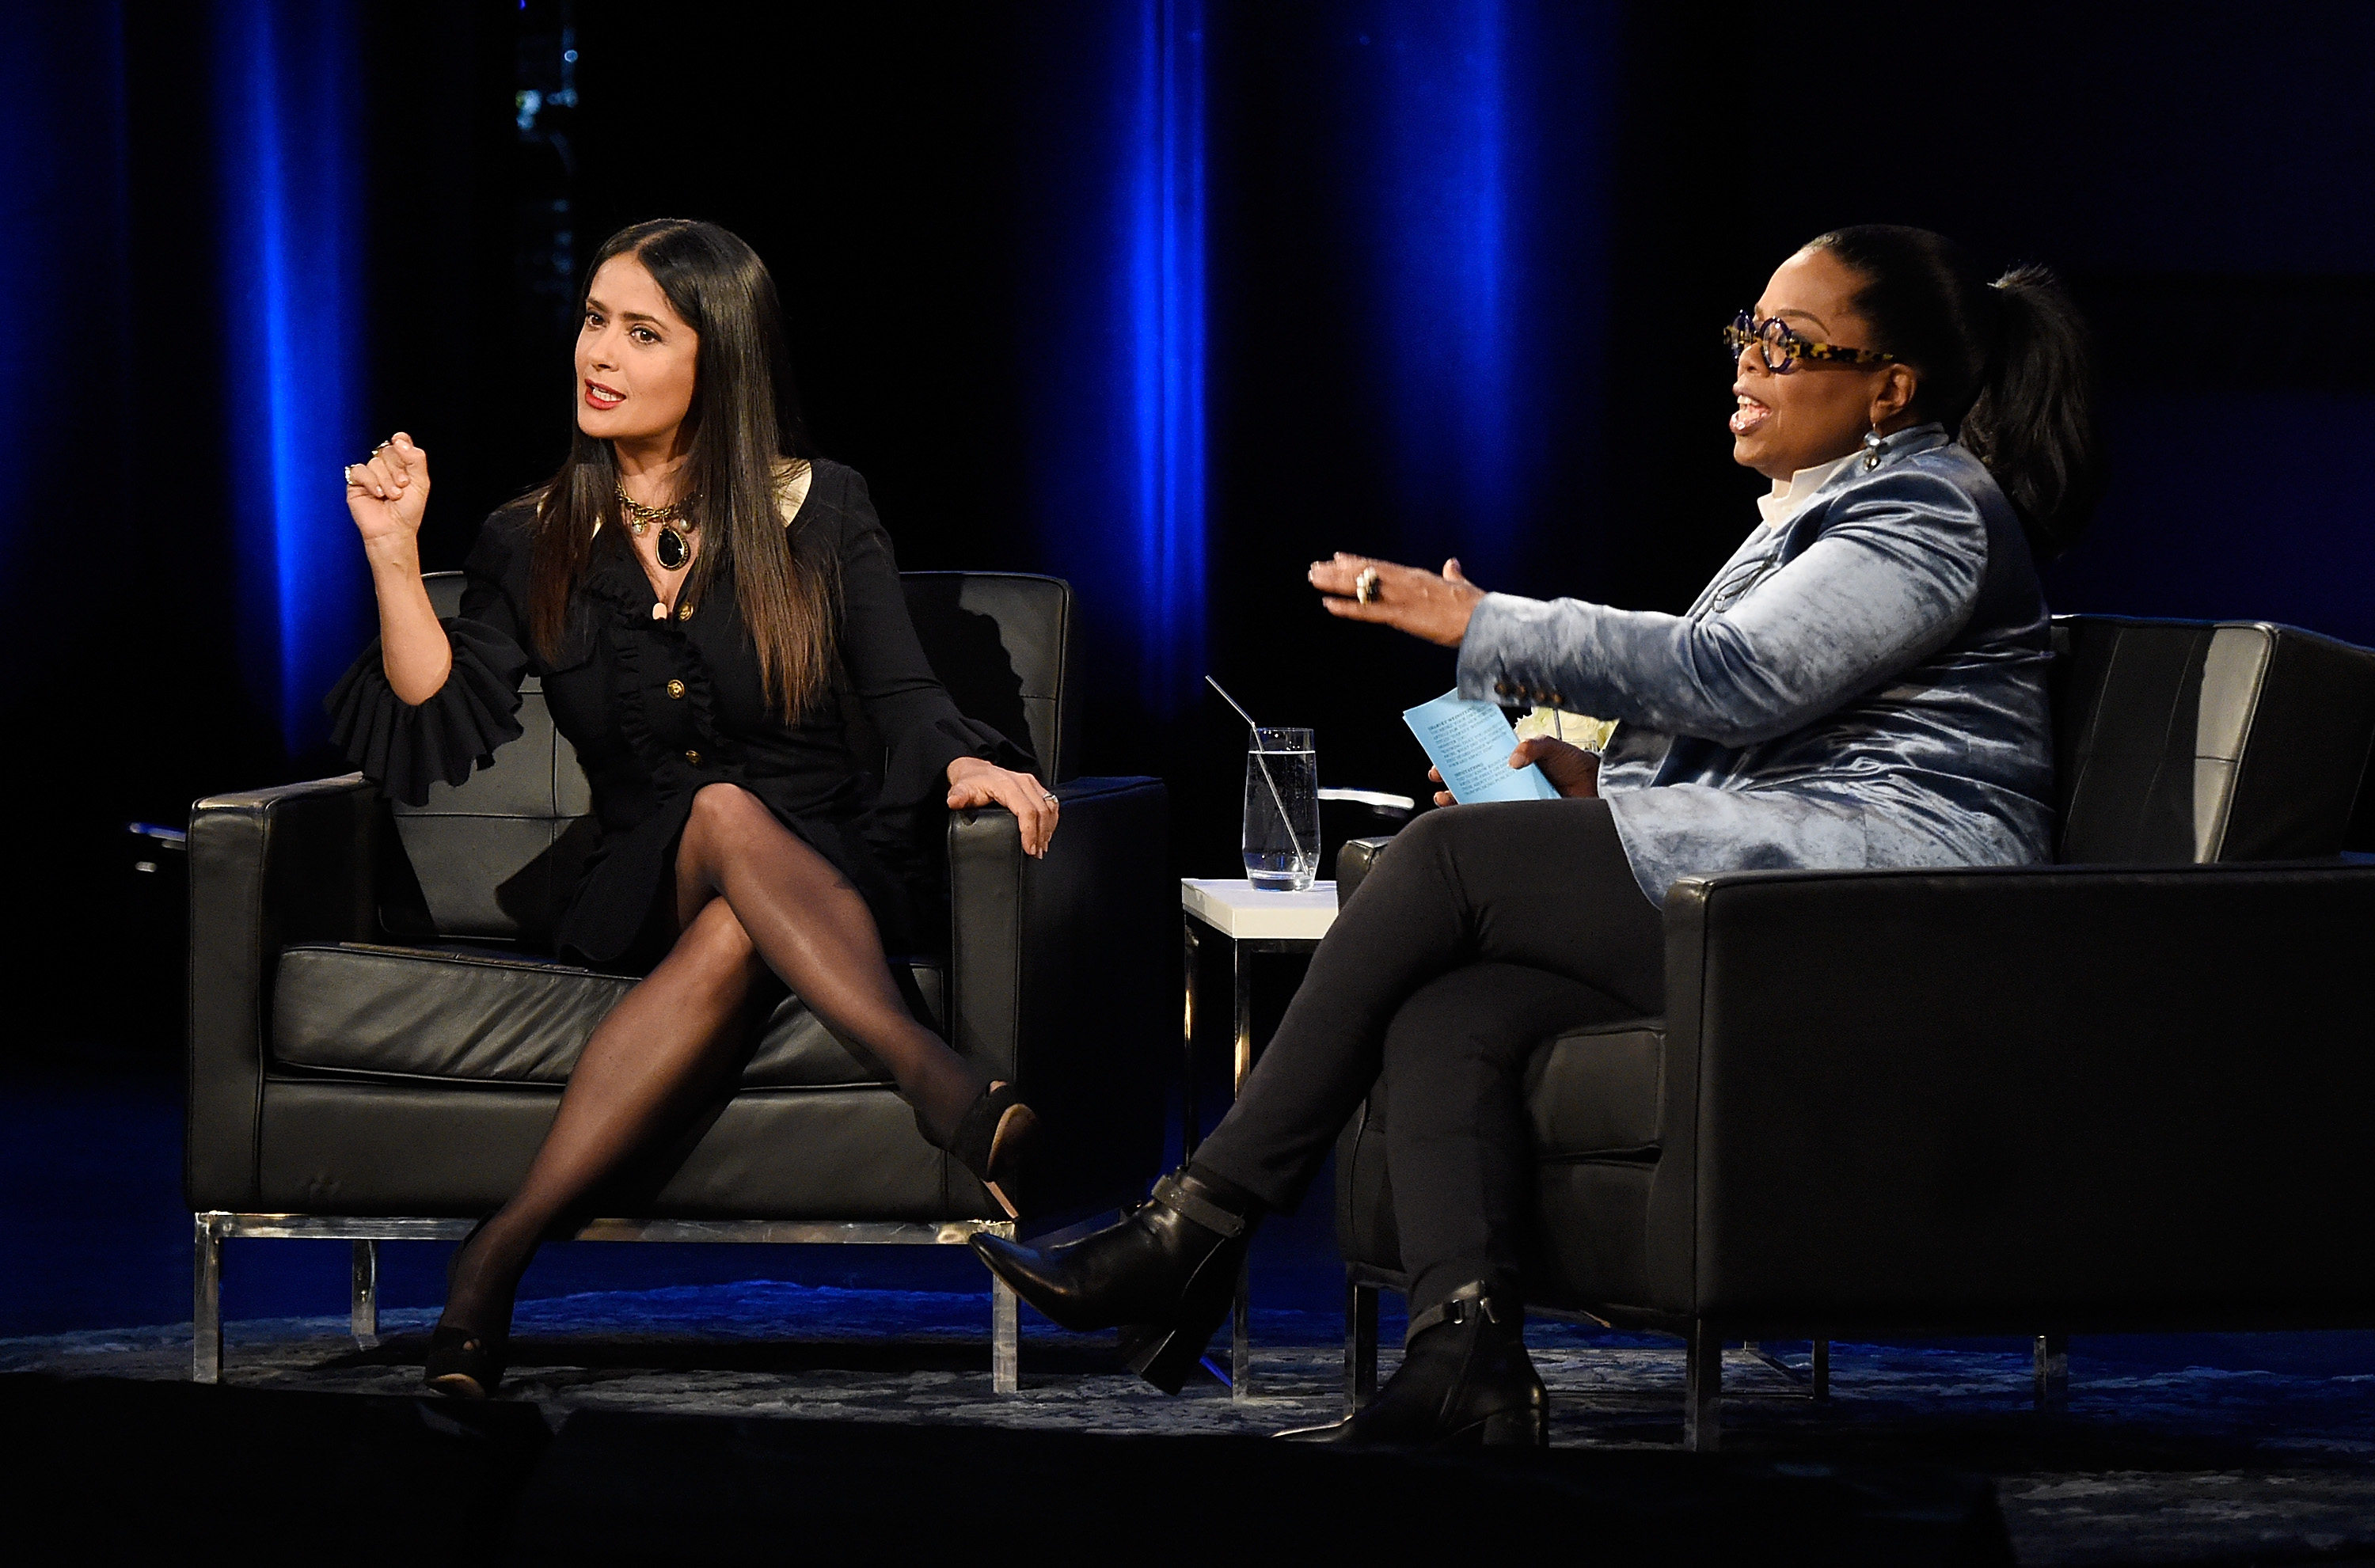 Salma Hayek Pinault and Oprah speak onstage during  Oprah's Super Soul Conversations  at The Apollo Theater on February 7, 2018 in New York City